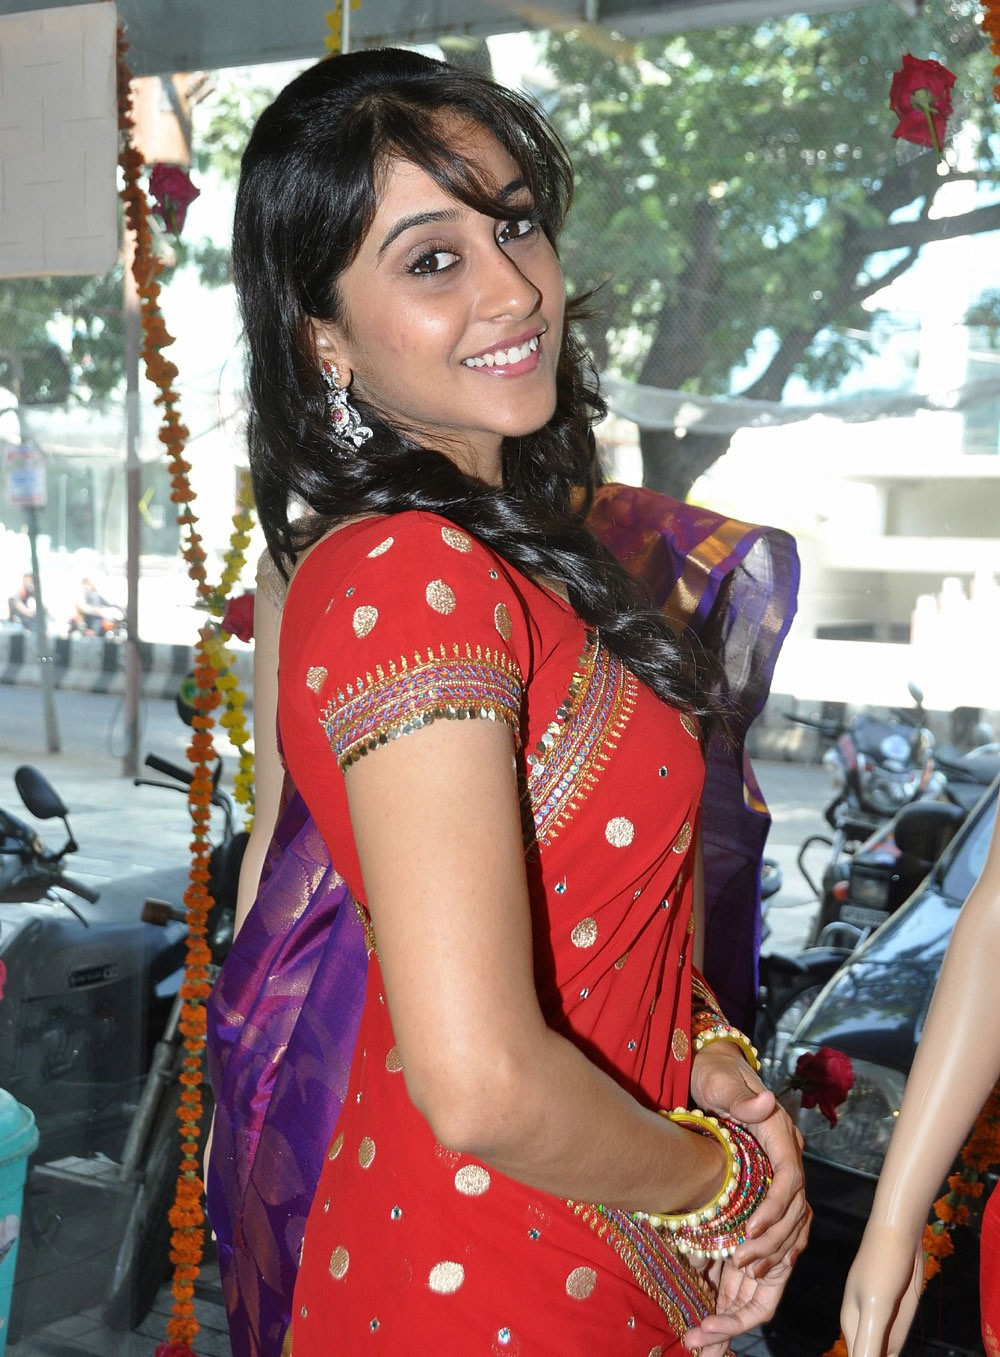 Tamil Actress Regina Cassandra Hot Pics - Trionic 88 Tube Sex-3859